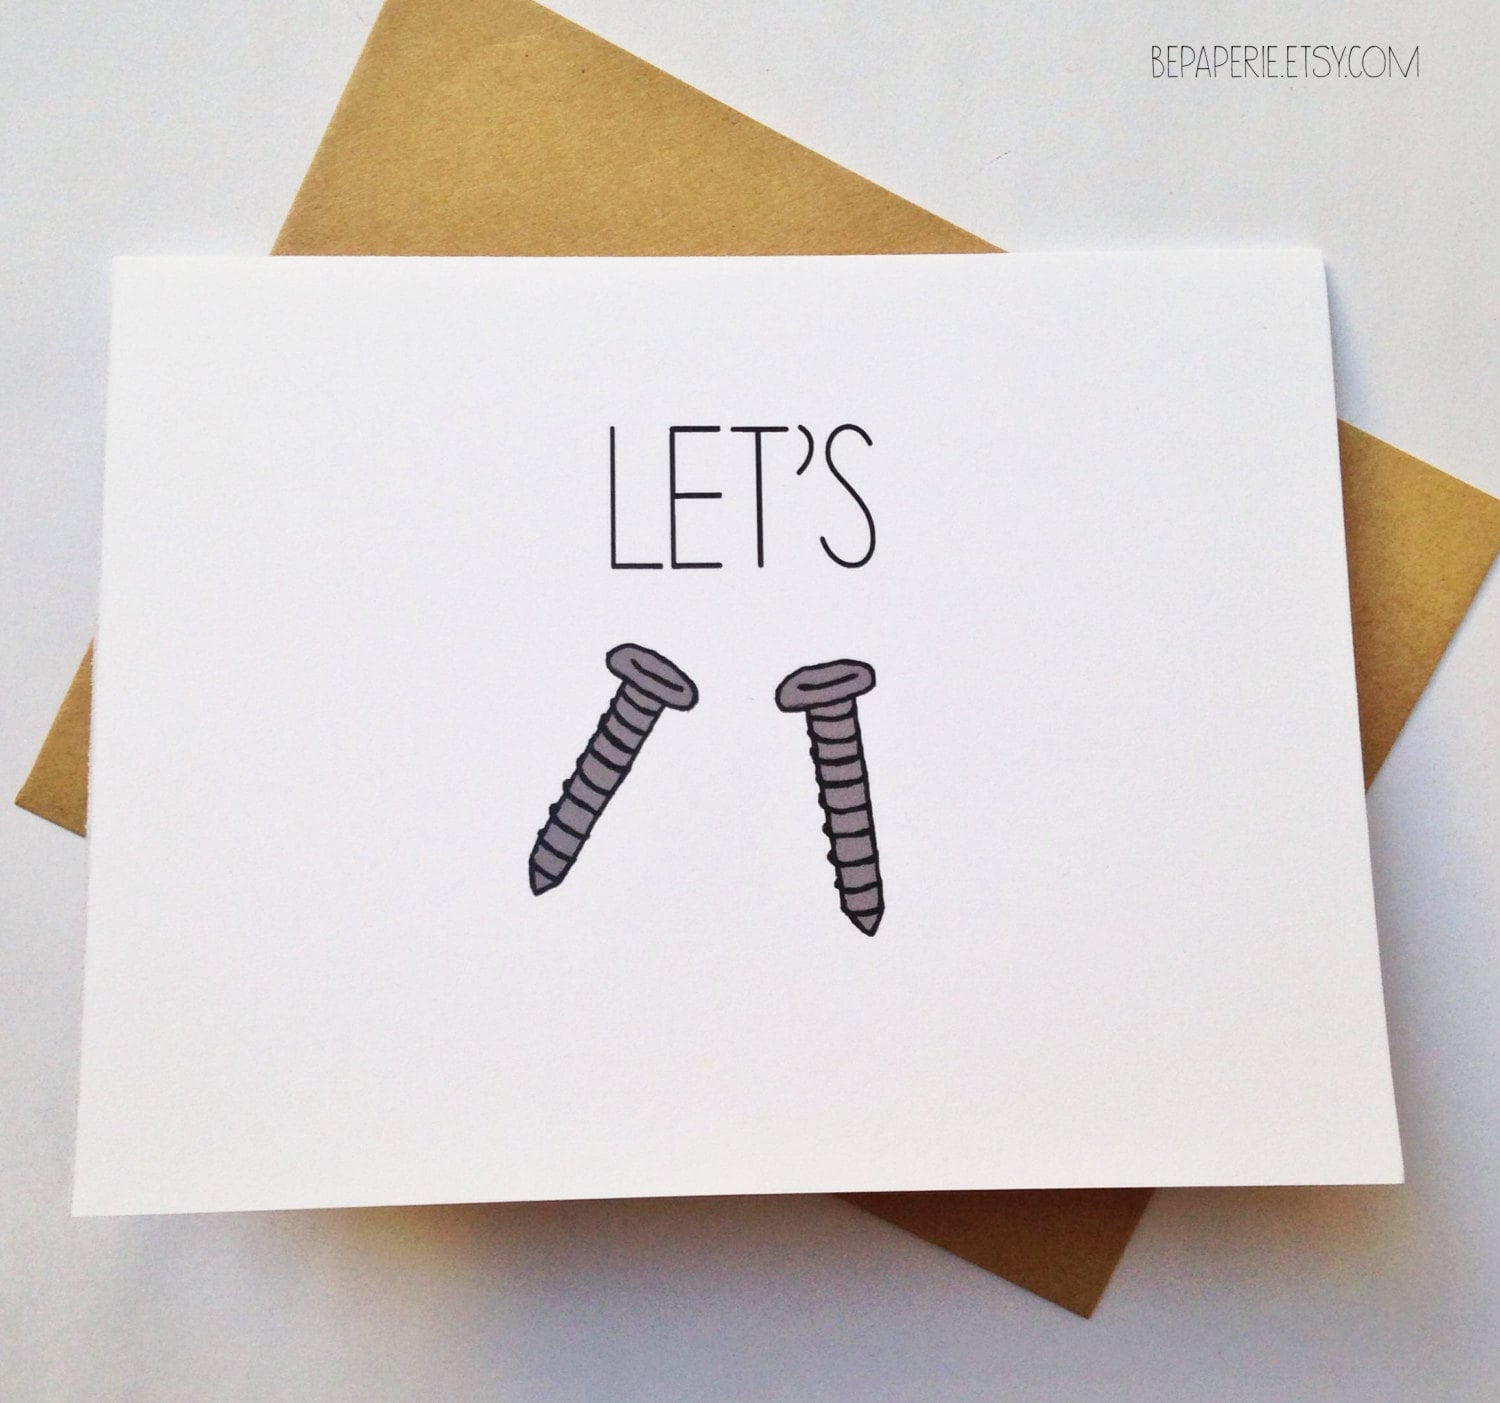 Let's Screw ($4)